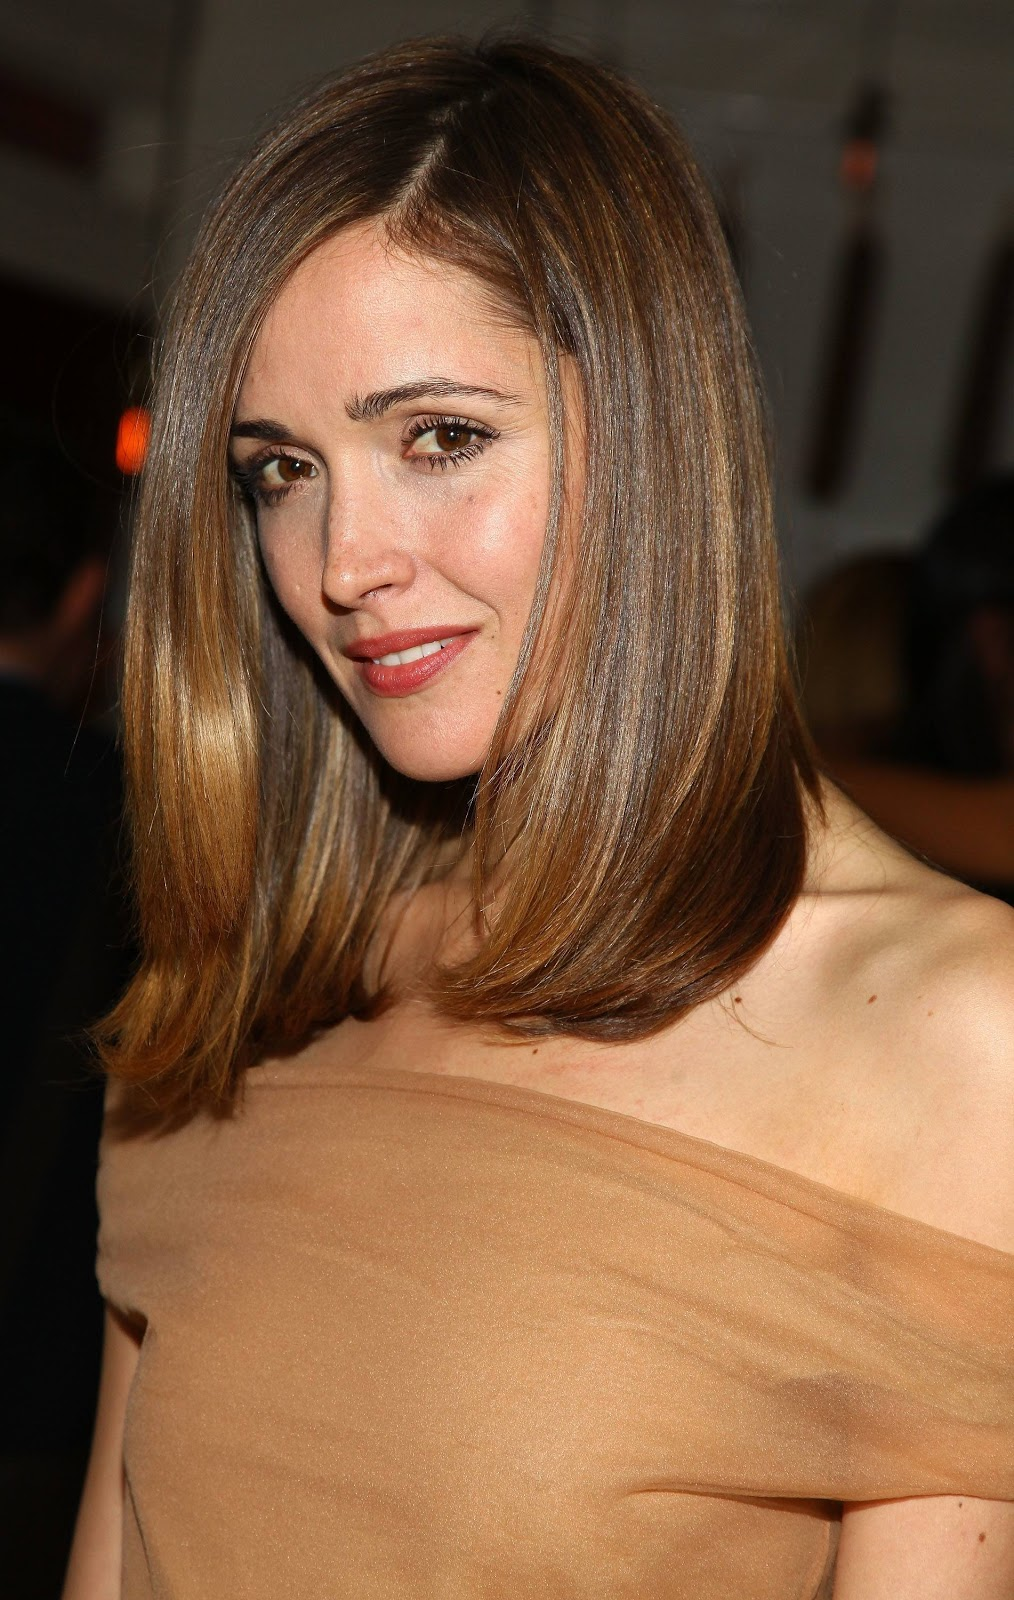 Medium Length Hair Haircuts For Medium Length Hair Haircuts For Medium